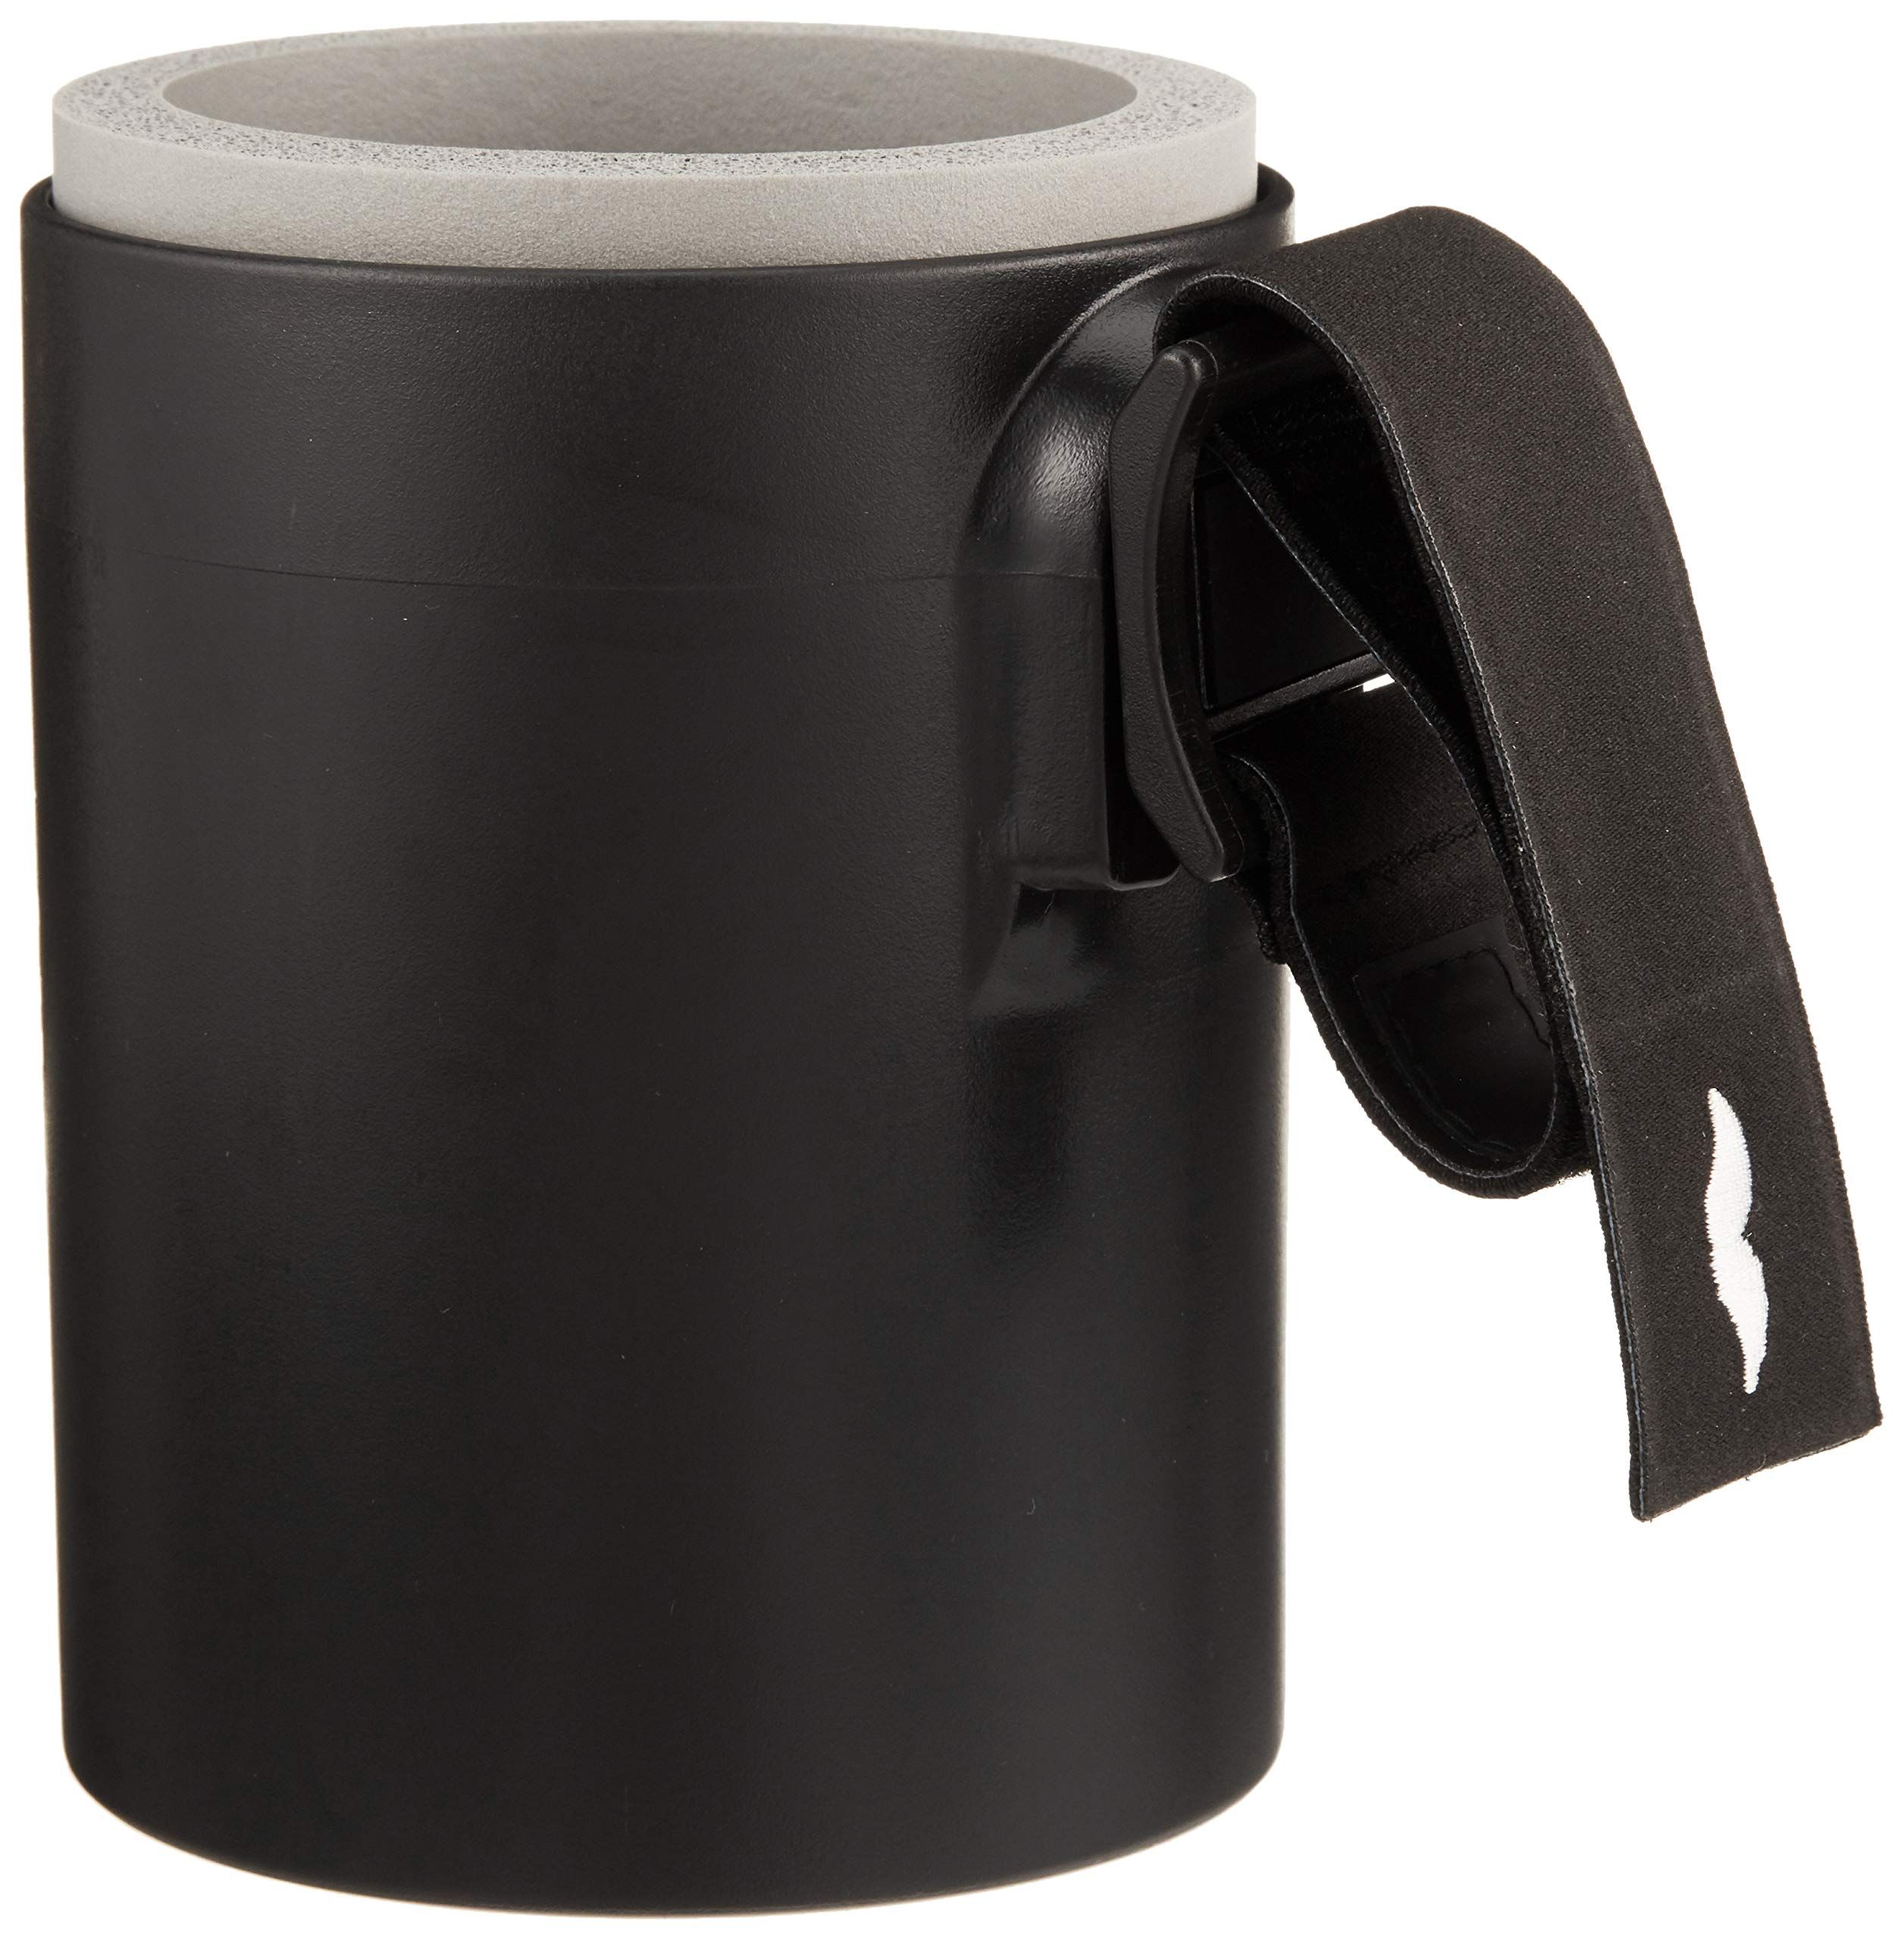 Dadding & Co. Original DaddieCaddie Cup Holder, Koozie Combo For Strollers - includes Mounting System - Holds 12 Oz. Can - Detachable Cupholder